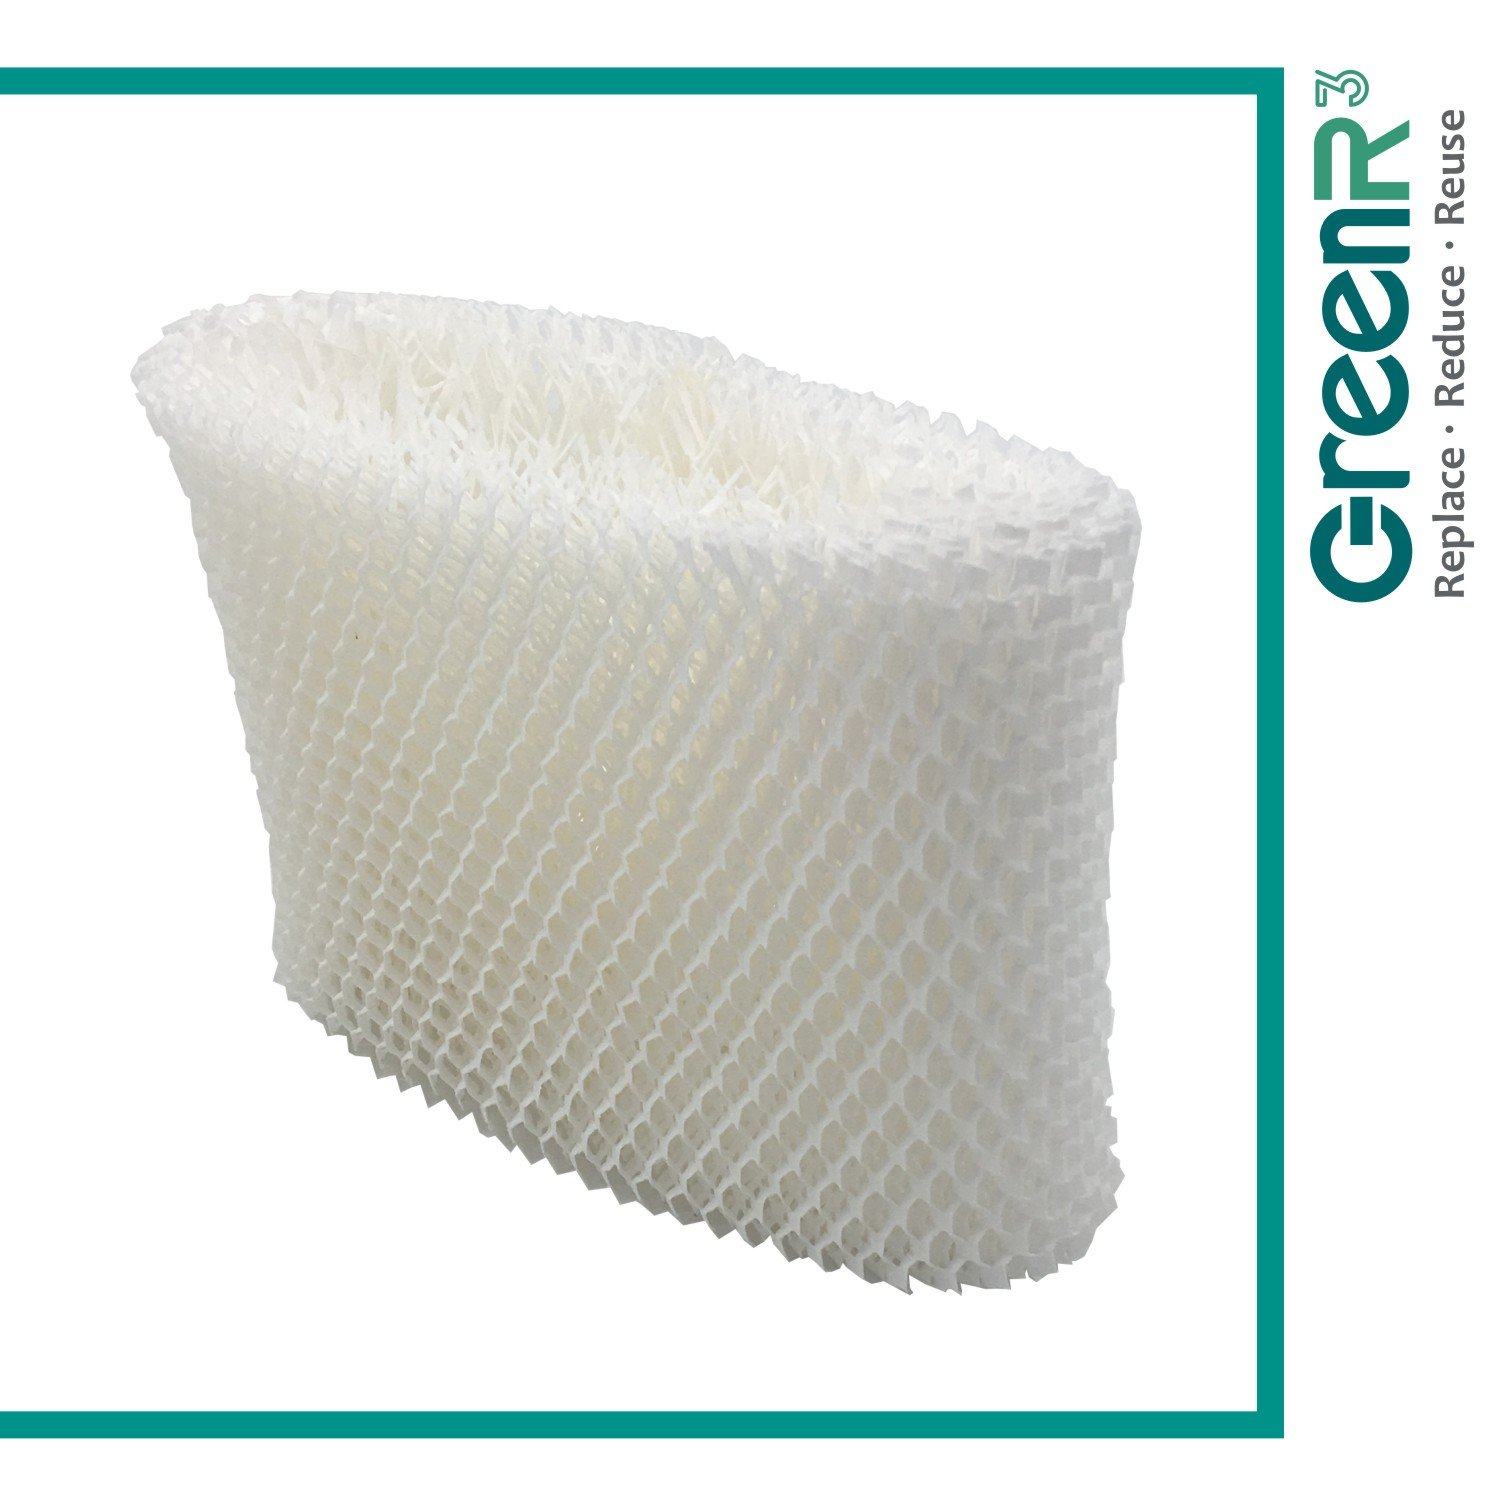 GreenR3 1-PACK Wick Filters Humidifiers for Honeywell HAC-504 fits HCM-1000 HCM-2000 HCM-315T HEV-355 HCM-500 HCM-550 HCM-600 HCM-300 HCM-350 ECM-250i HAC-504V1 WF2 HEV355 HEV312 HW500 Parts and more